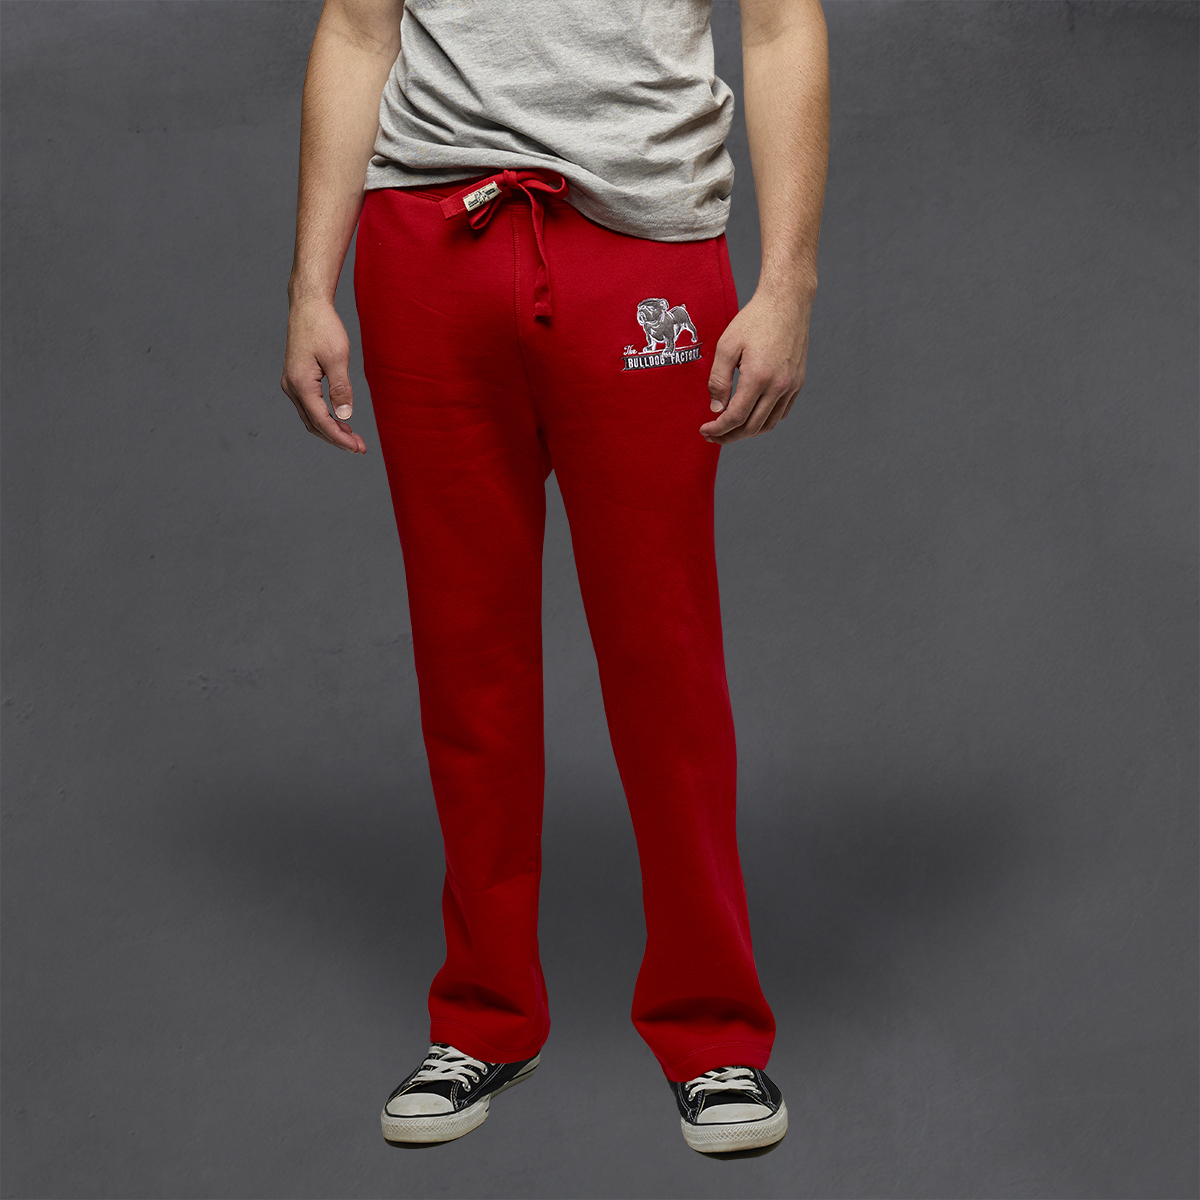 Guys Heritage Sweatpants - Cherry Tomato